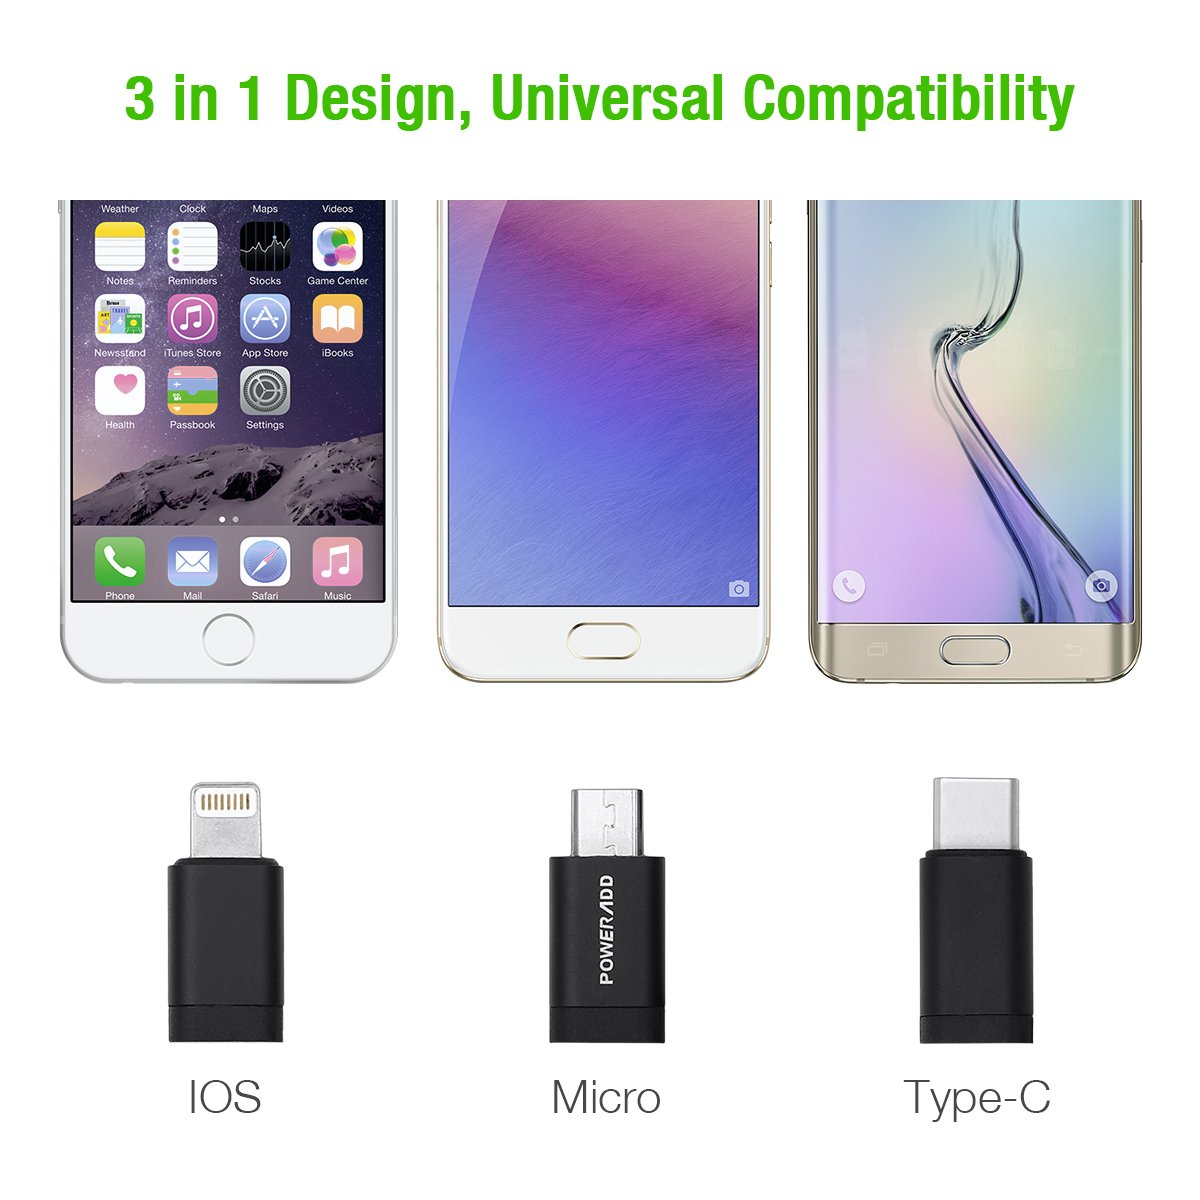 [MFi Certified] 3 in 1 Charging Cable, Poweradd MFi Certified Lightning, Type C, Micro USB Cable, 3.3ft (1m) Multiple Universal Charging Cord for iPhone, iPad and Android Smartphone